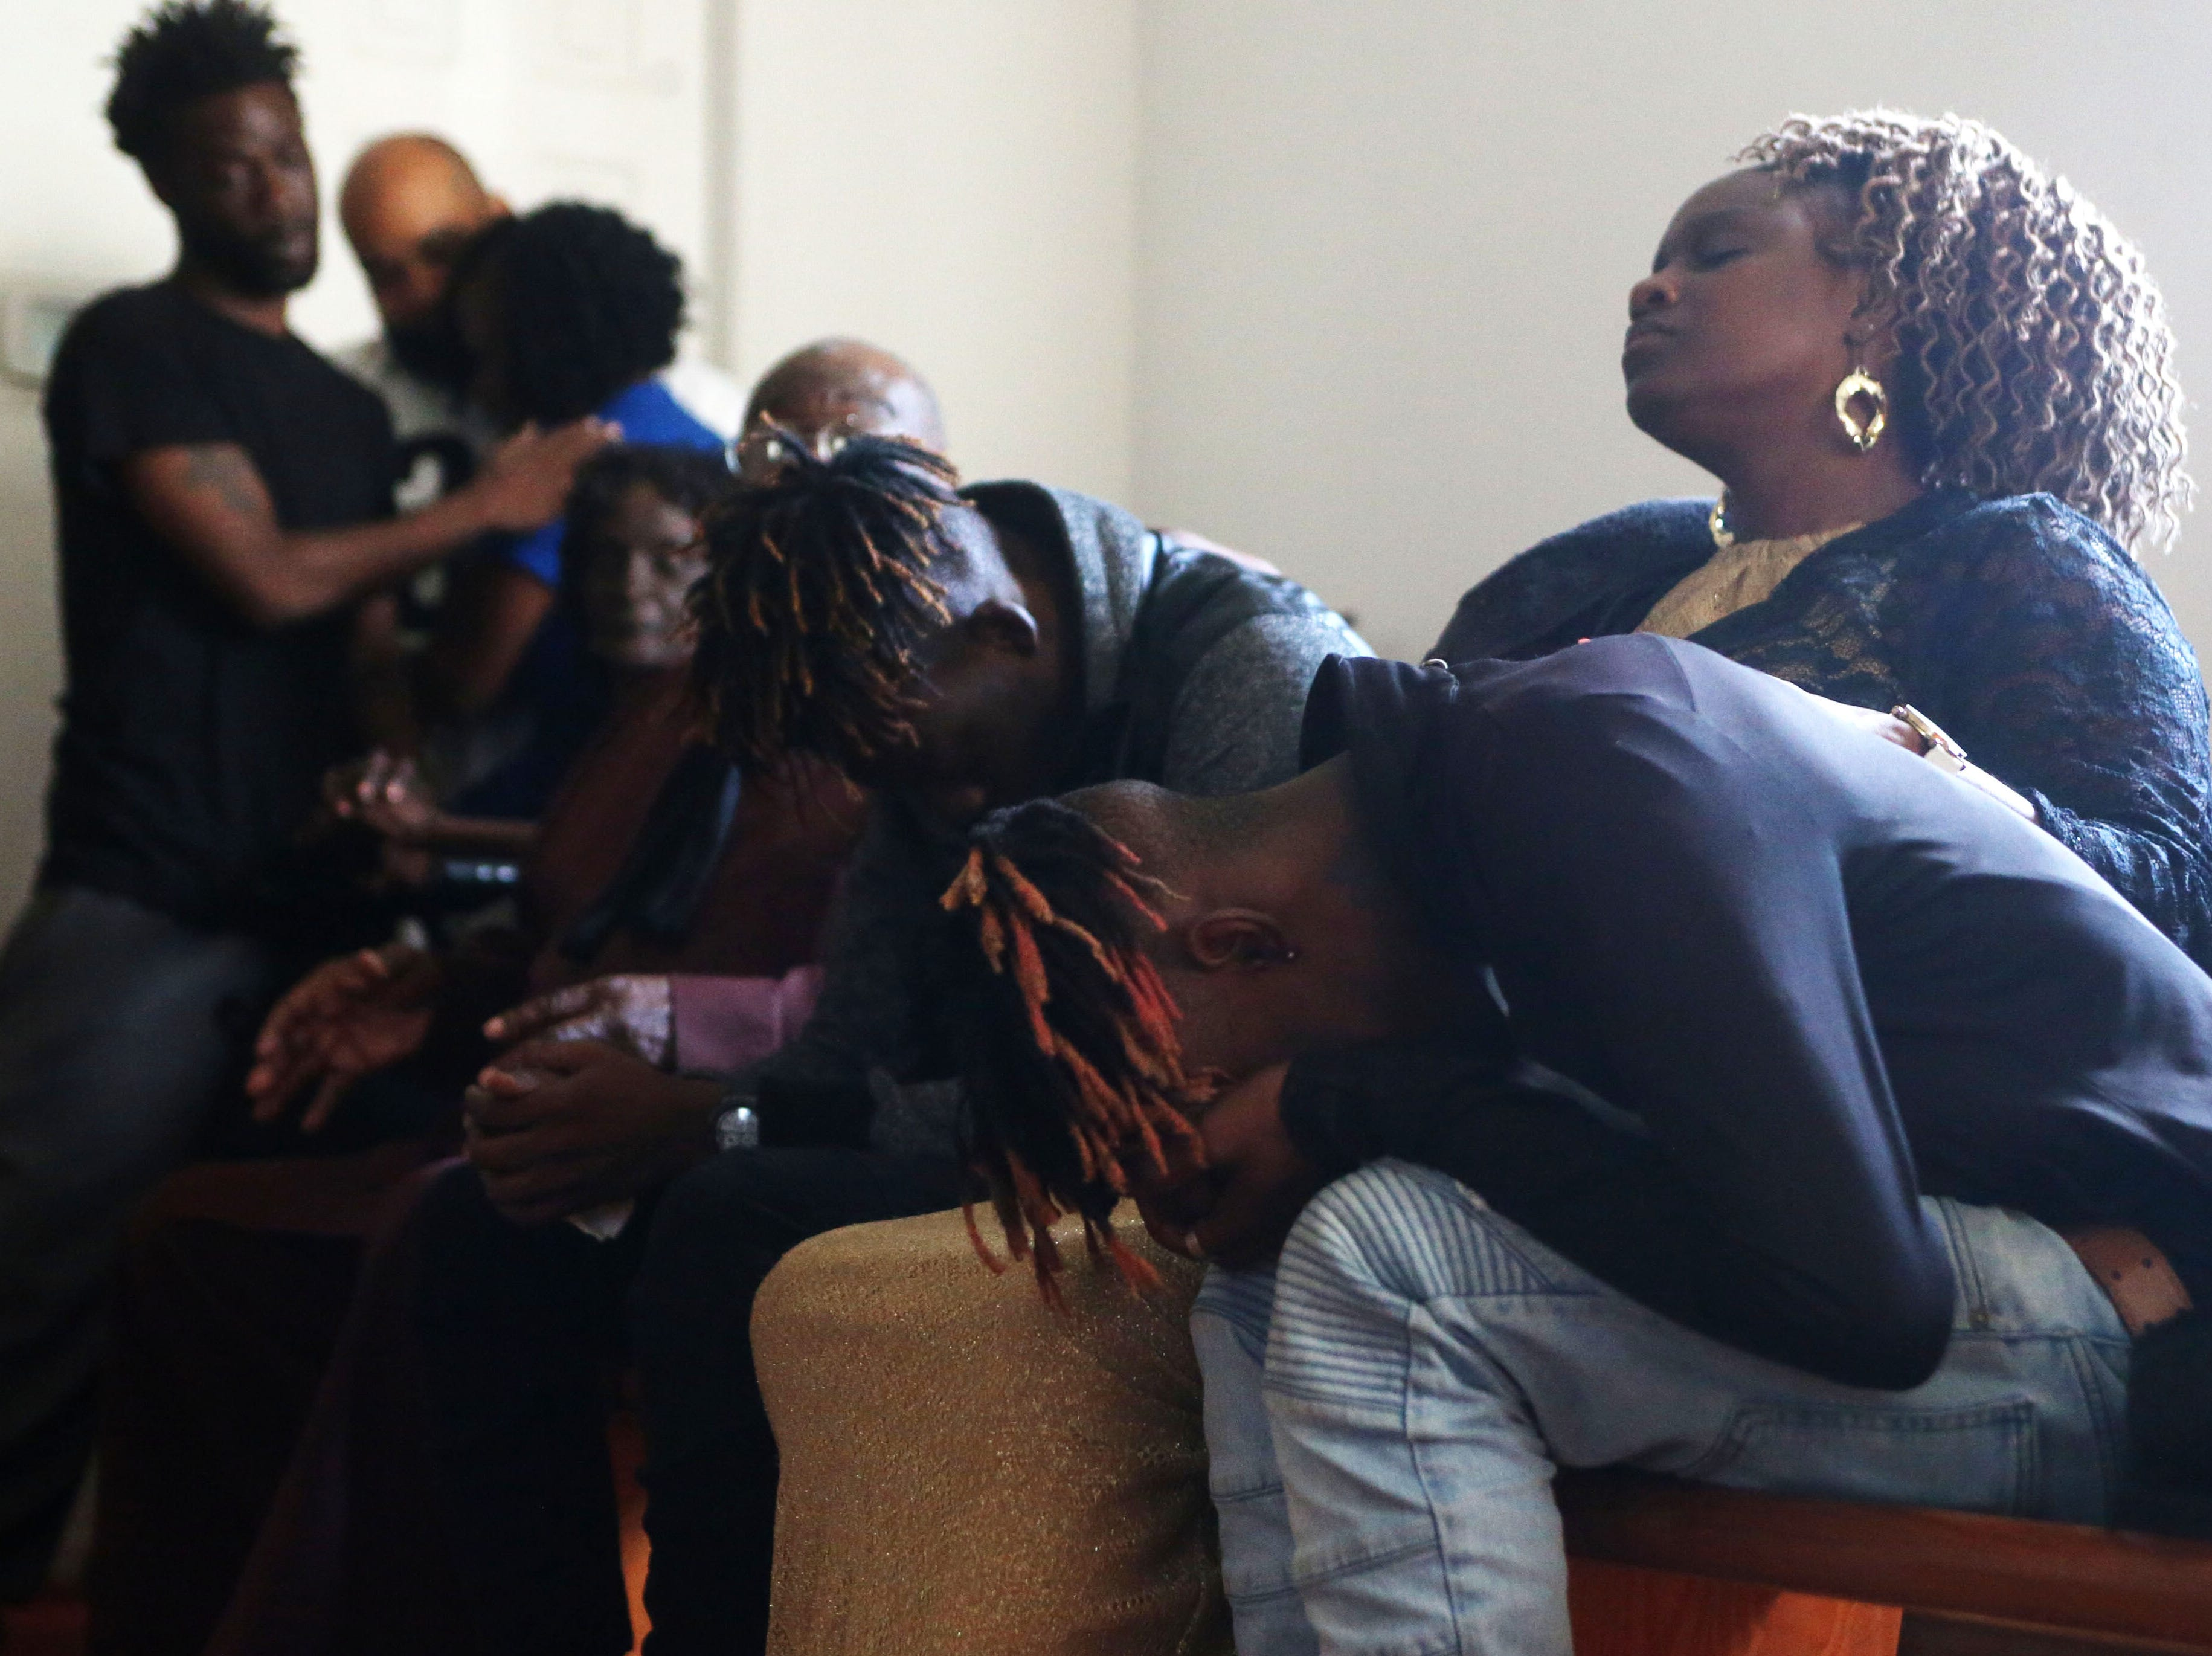 Jeanella Hall, 38, aunt, middle consoles Tyrone Grant, 23, left, and Tyran Grant, 21, right, sons of Demashell Bass, a woman who died because she could not receive medical attention and died during Hurricane Michael, at the Dream, Vision, and Destiny (DVD) Ministry in Gretna, Fla., on Sunday Oct. 14, 2018. The hurricane hit Florida Wednesday, Oct. 10, 2018 and left many rural towns devastated and without power for days.